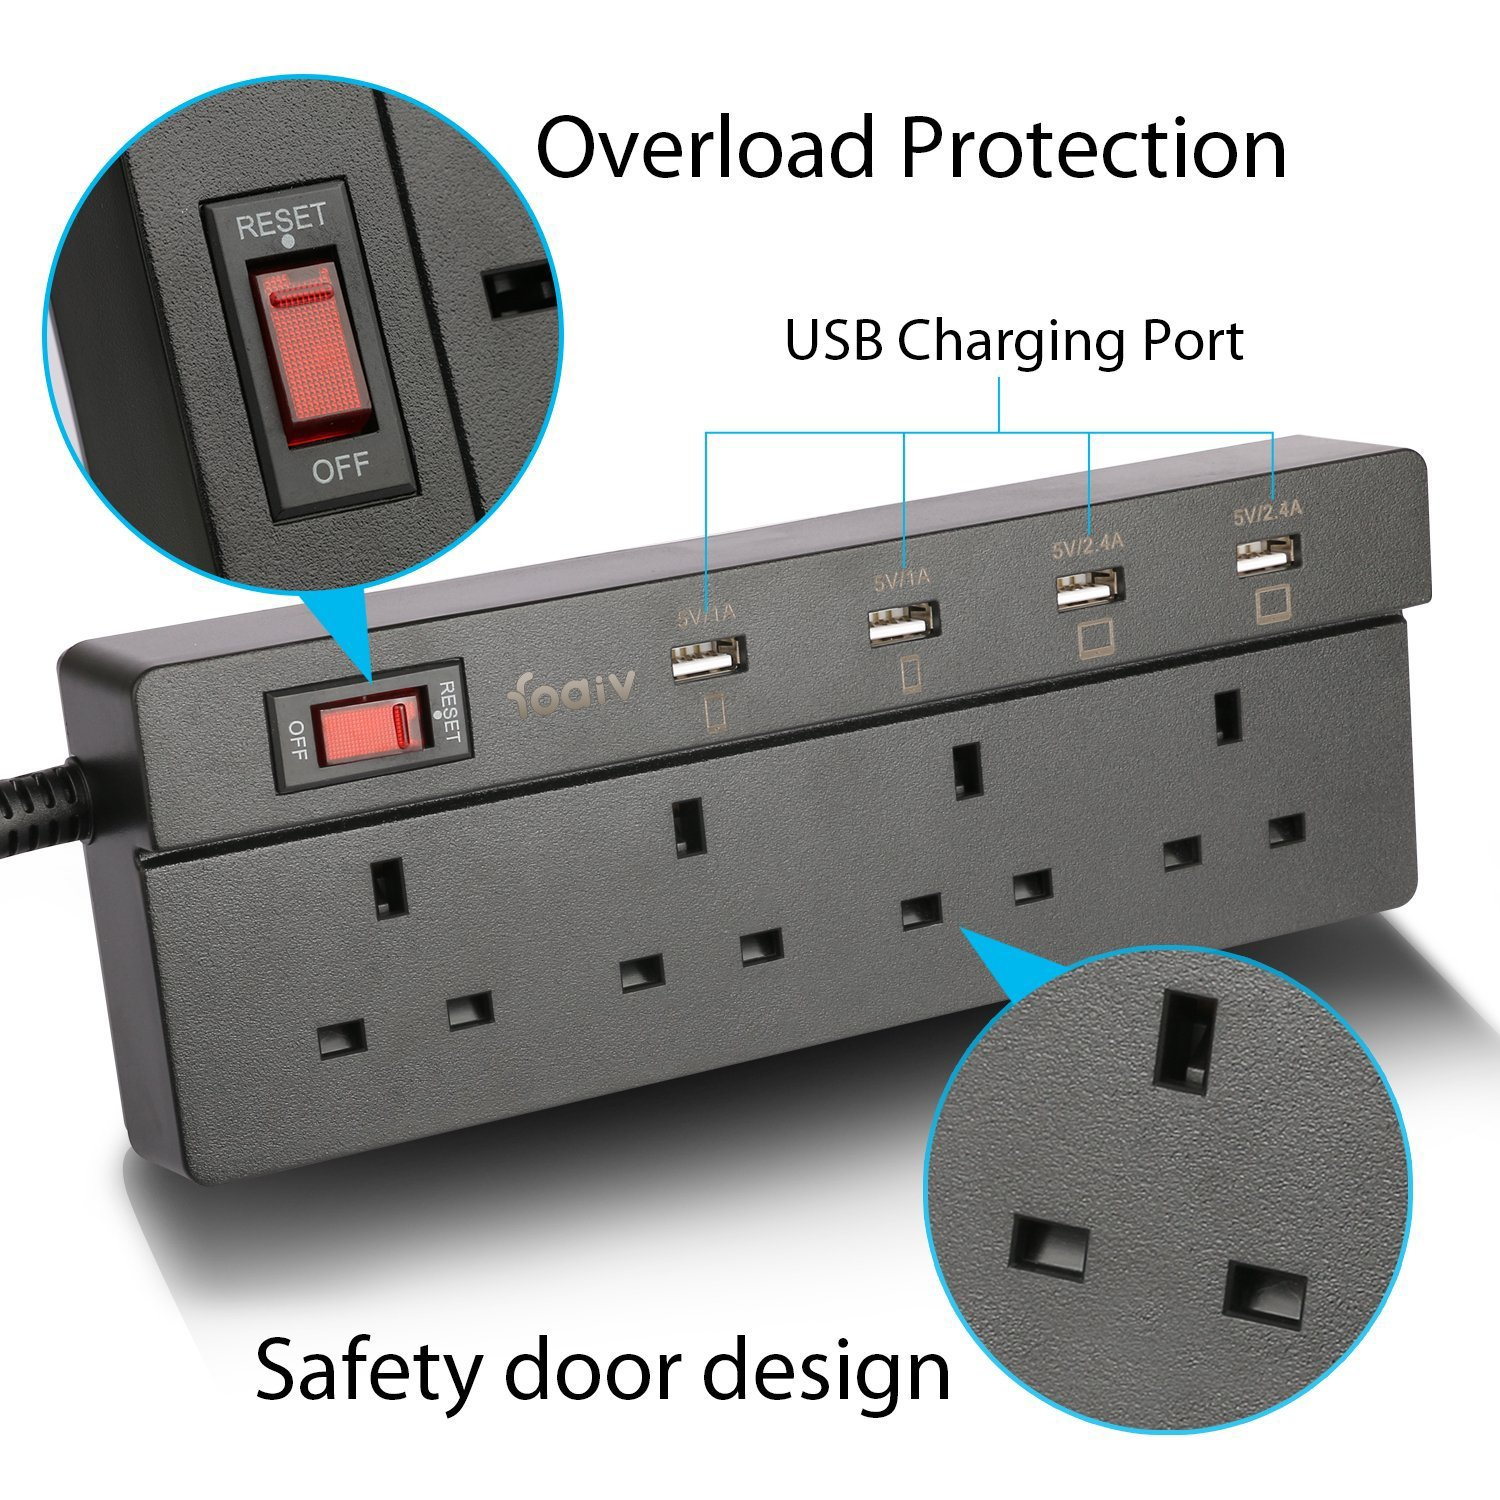 1.8 Metre Extension Cord with Fuse Surge Protection Applicable for Appliances 4 Way Foaiv USB Power Strip with Overload Switch Charging Smart Phone Tablet Extension Lead with 4 USB Ports Black